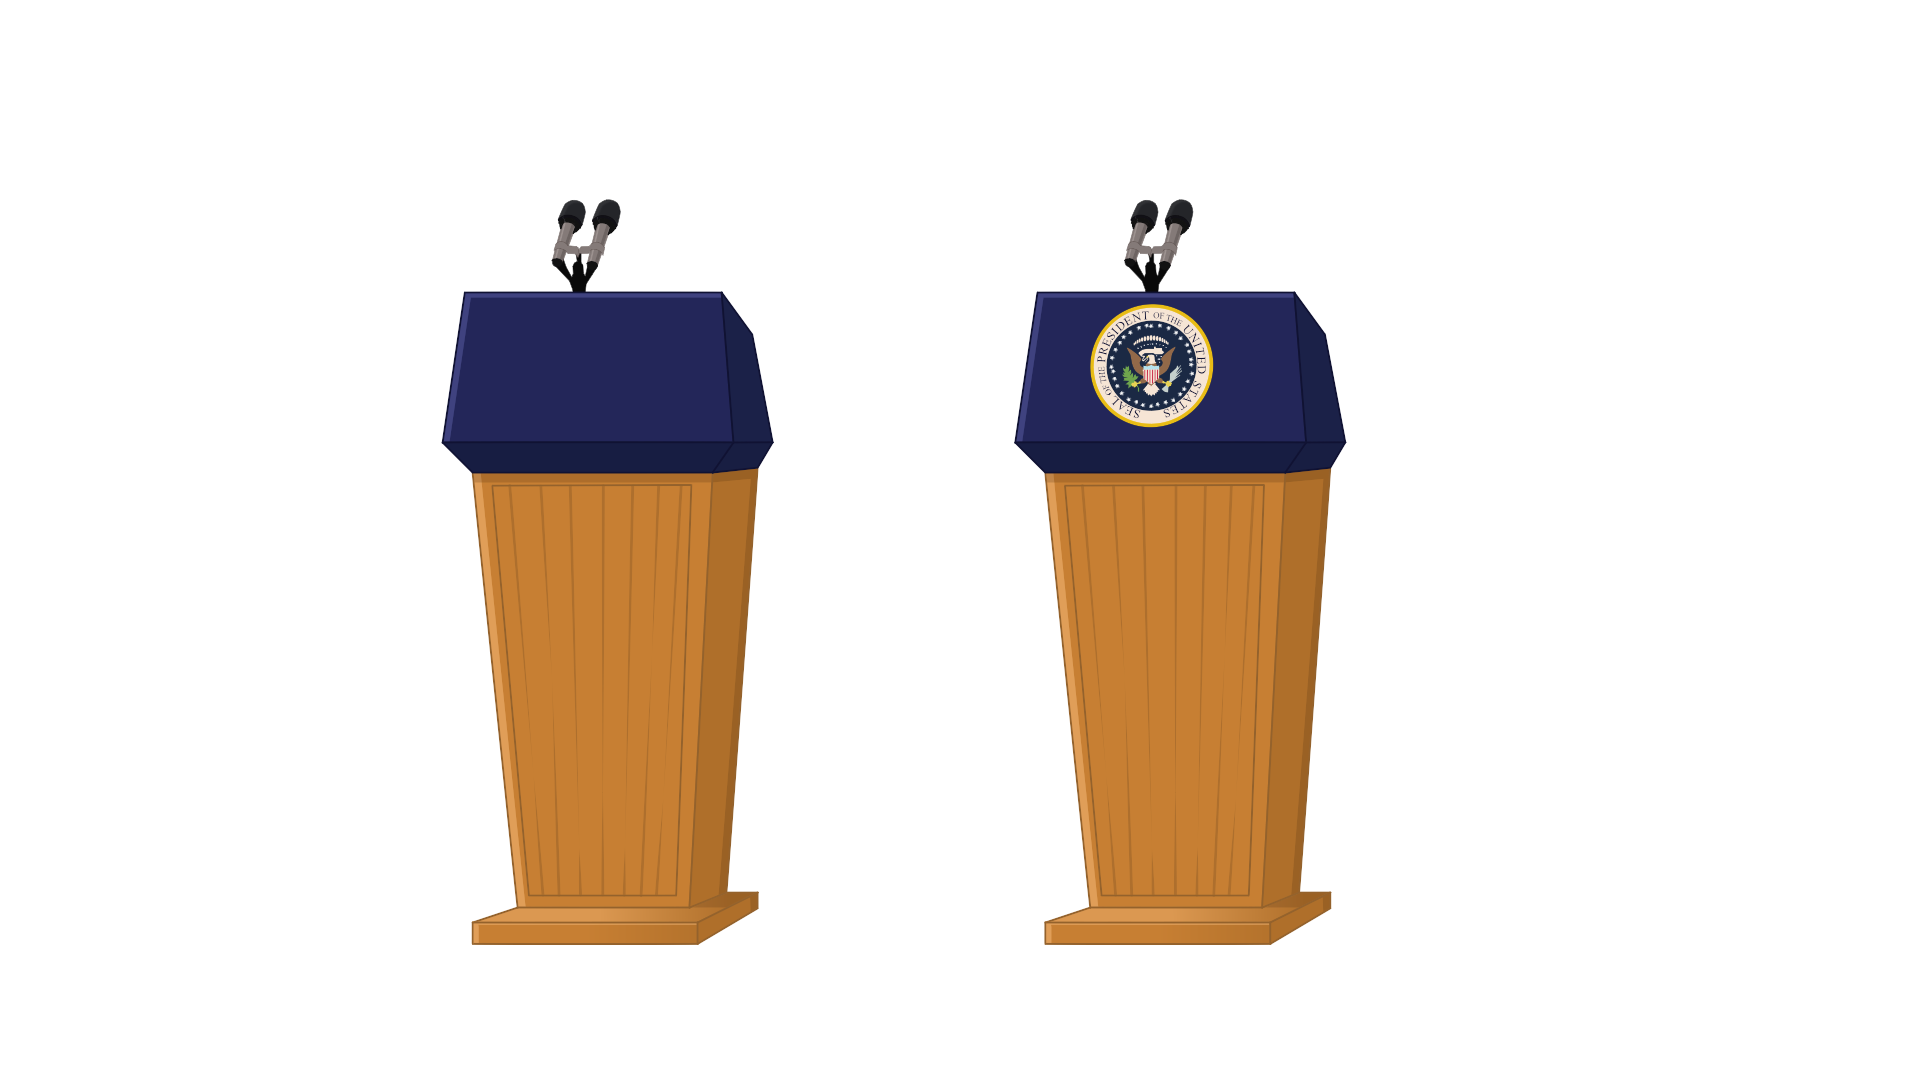 collection of presidential. Election clipart president podium